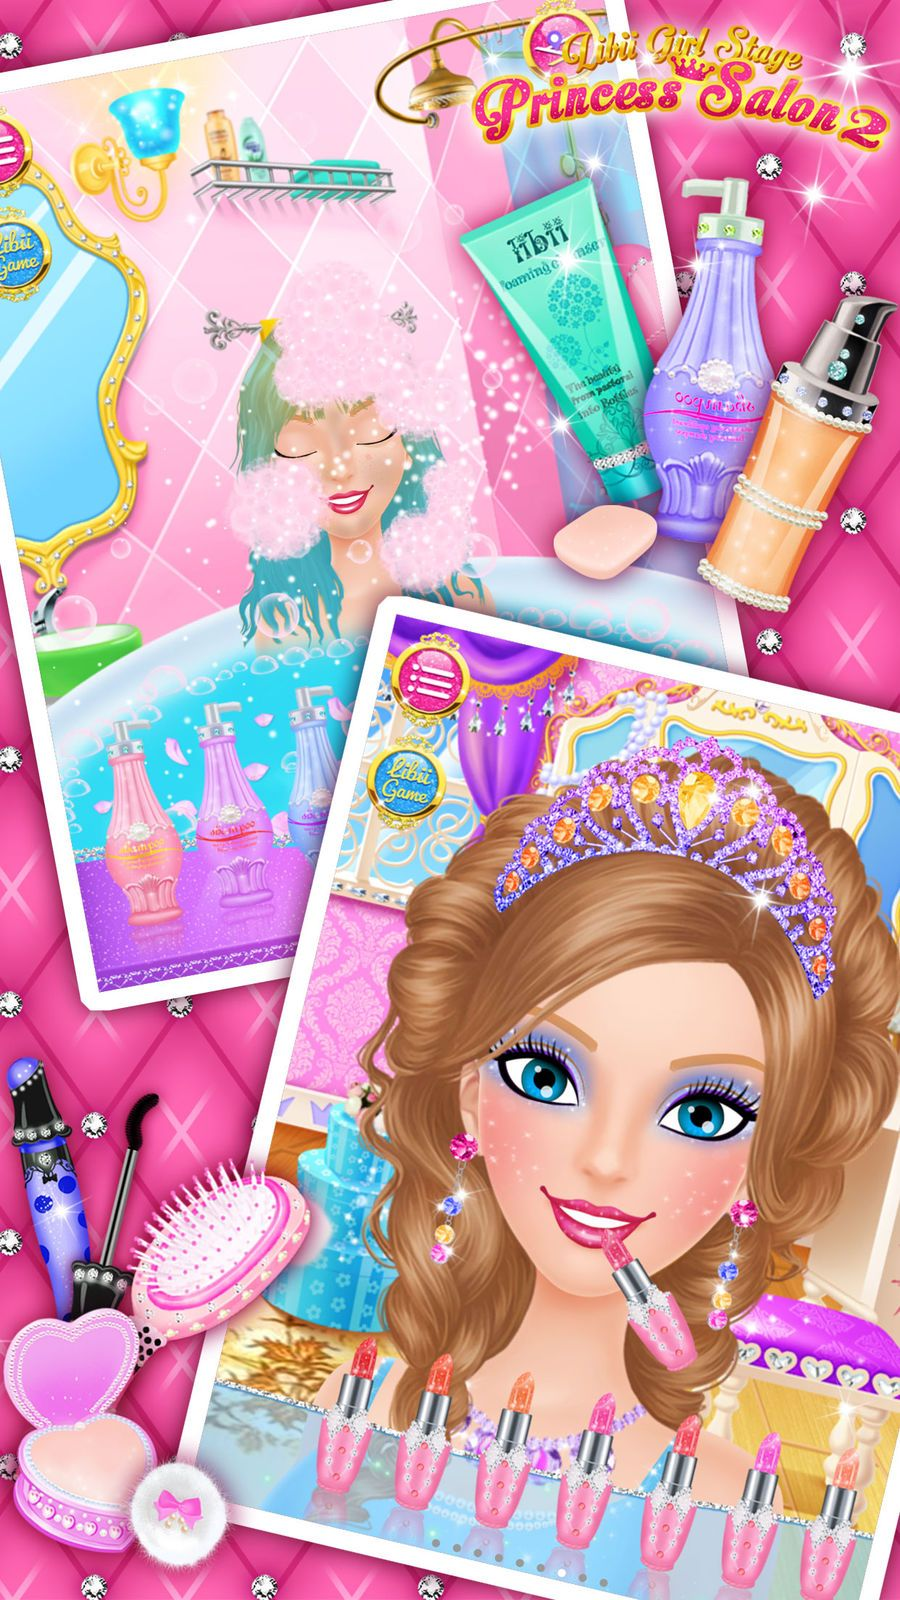 Princess Salon 2 Makeup Dressup Spa And Makeover Girls Beauty Salon Games Libii Games Beauty Family Beauty Salon Games Beauty Girl Makeover